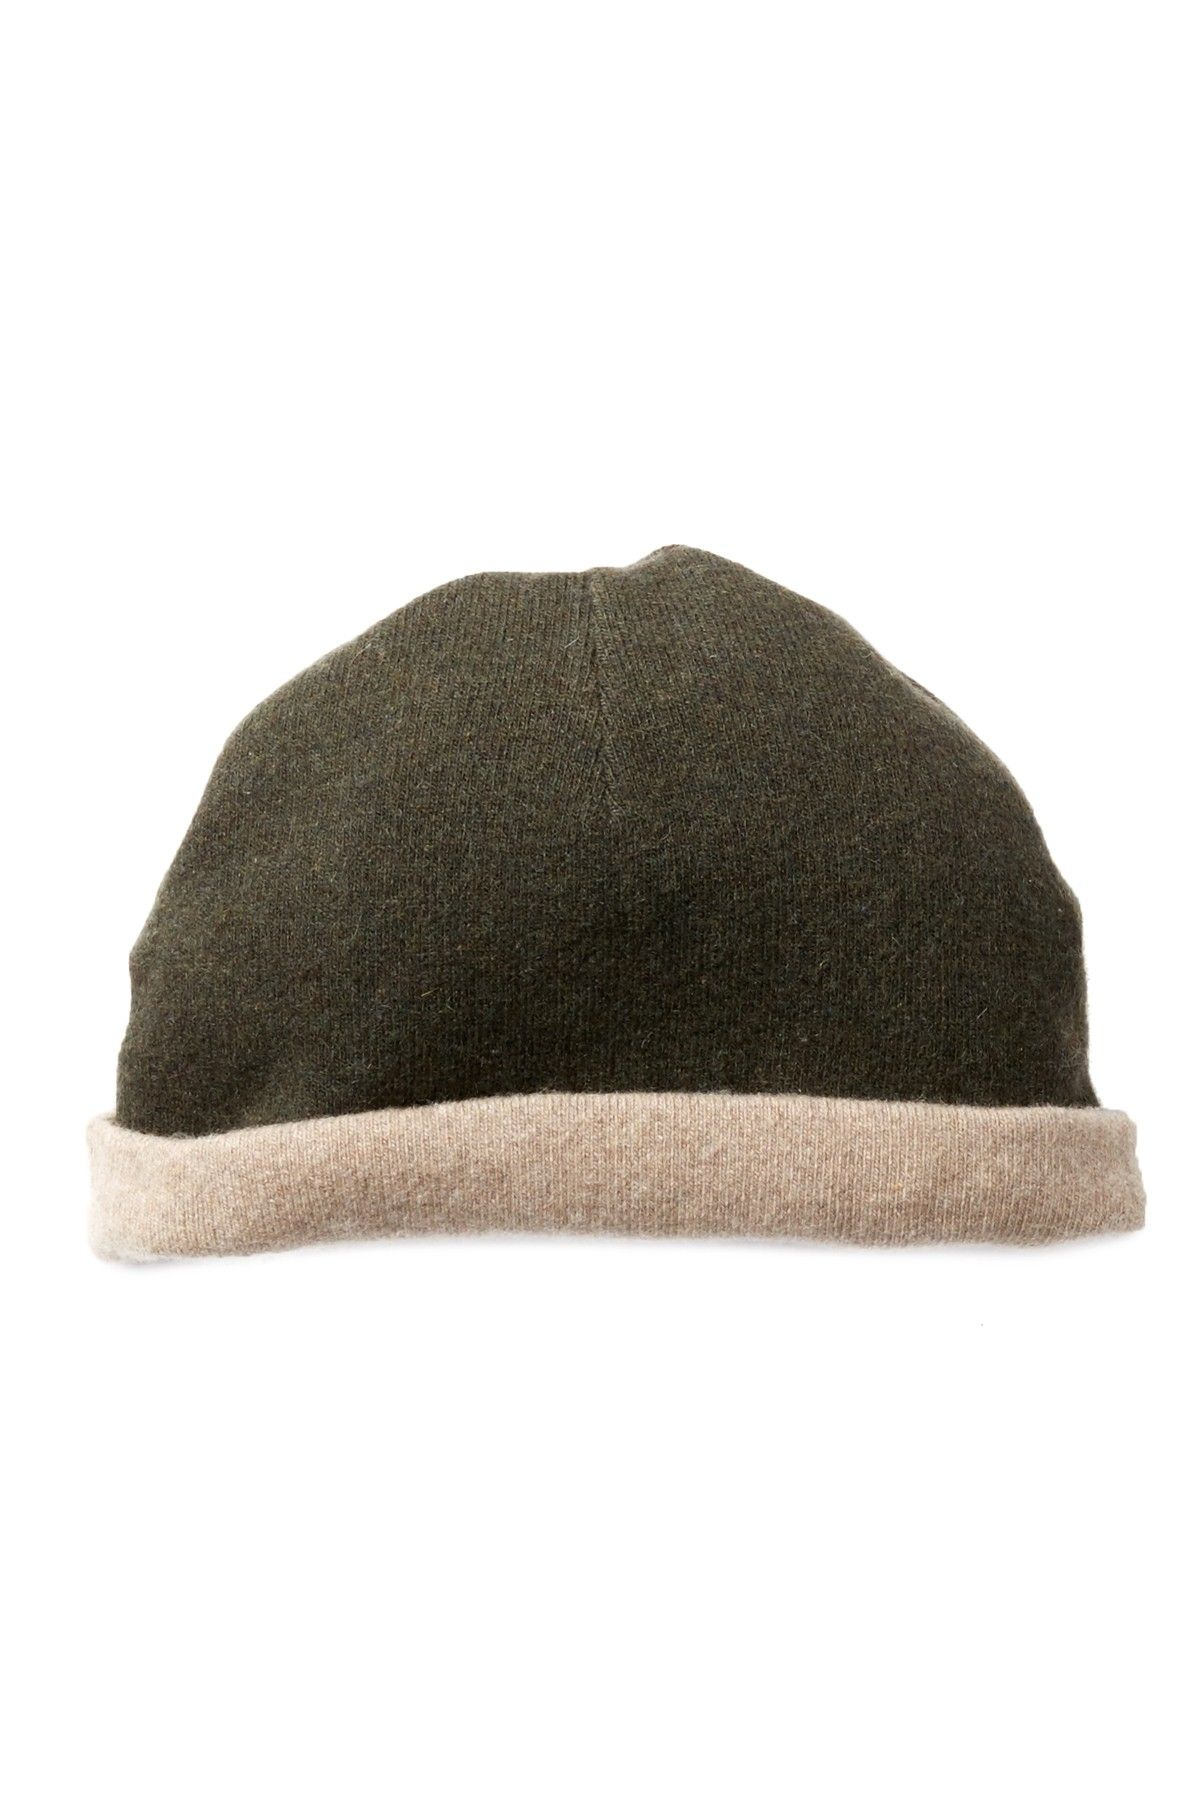 898c77d014c Nile Brown   Green Reversible Cashmere Beanie